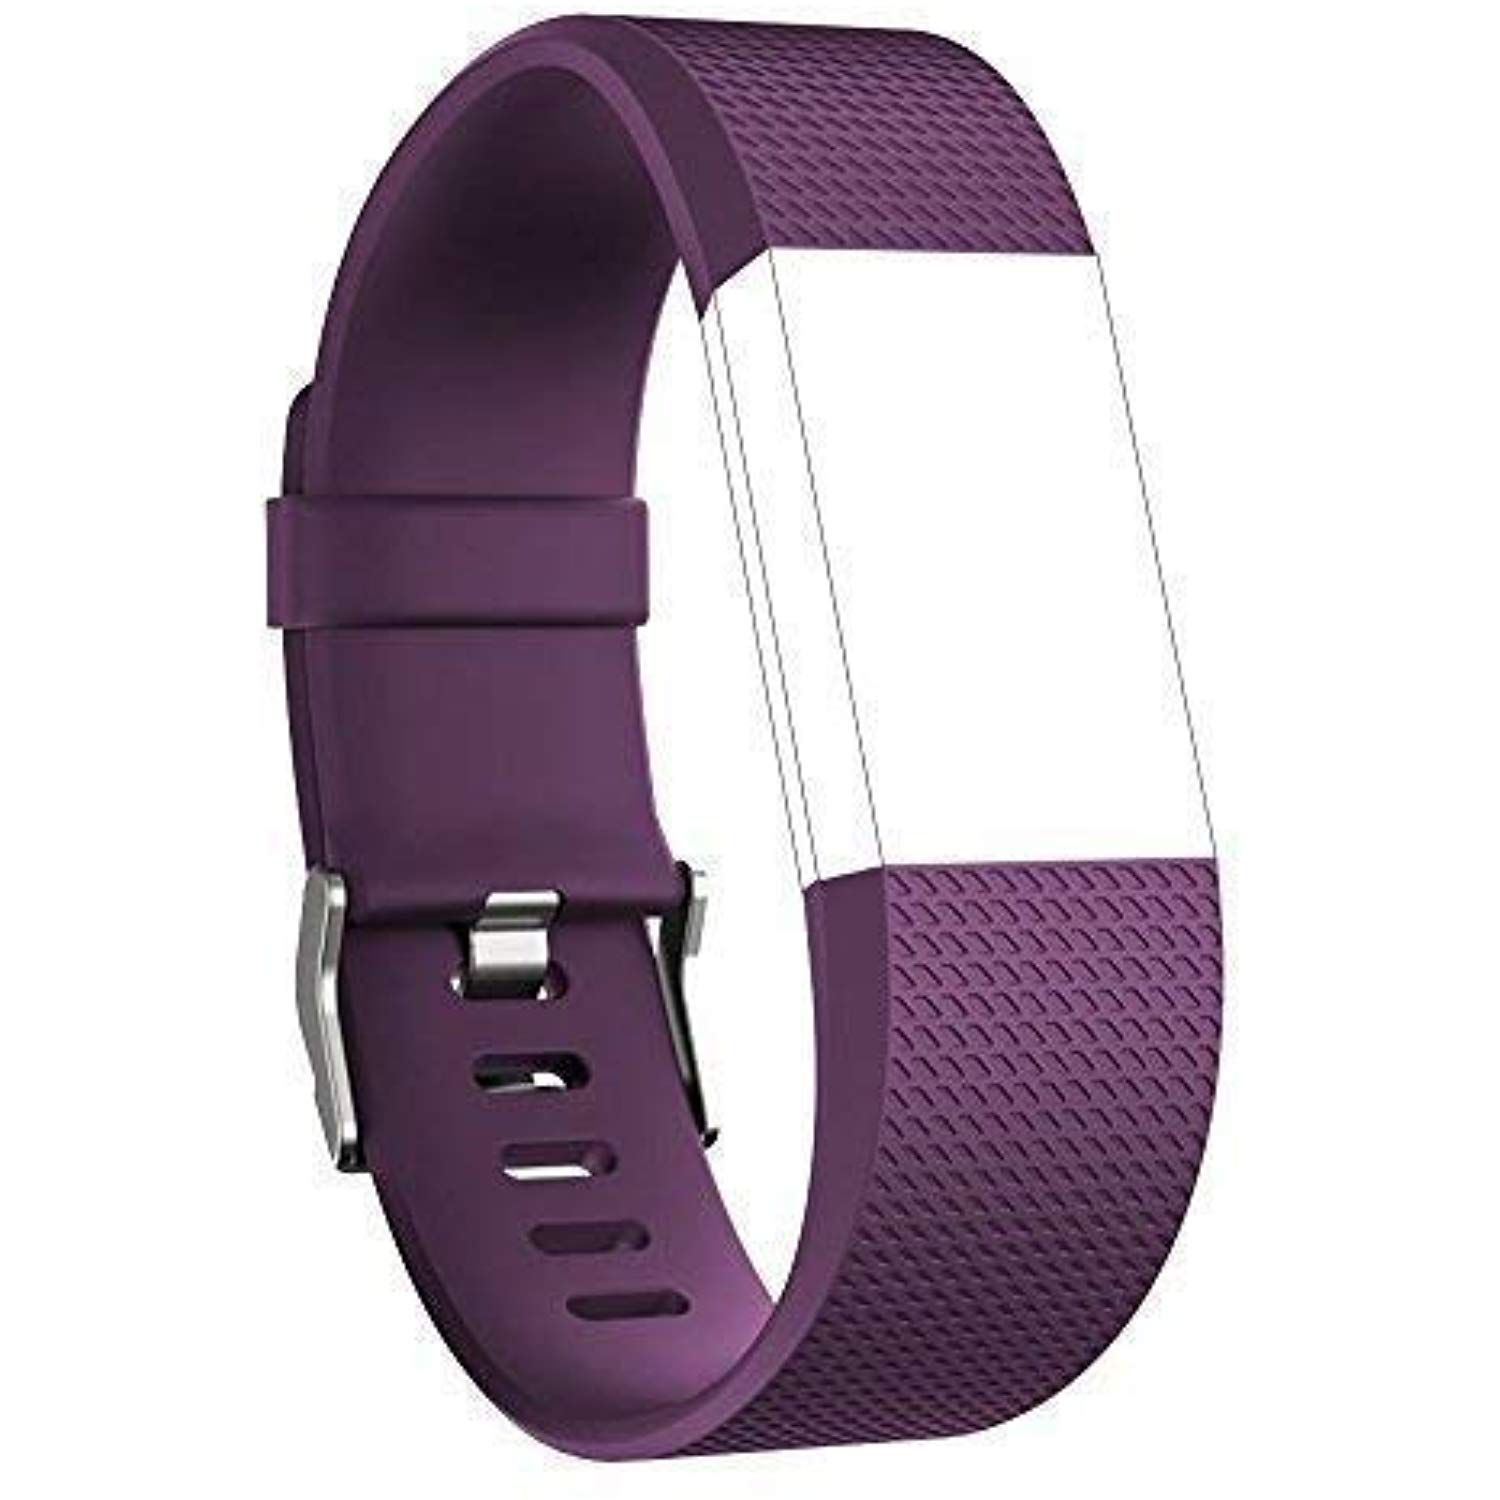 Nylea Fitbit Charge 2 Bands Magnetic Loop Premium Quality Stainless Steel Wrist Band For Fitbit Charg Fitness Wristband Fitness Watch Tracker Fitbit Charge